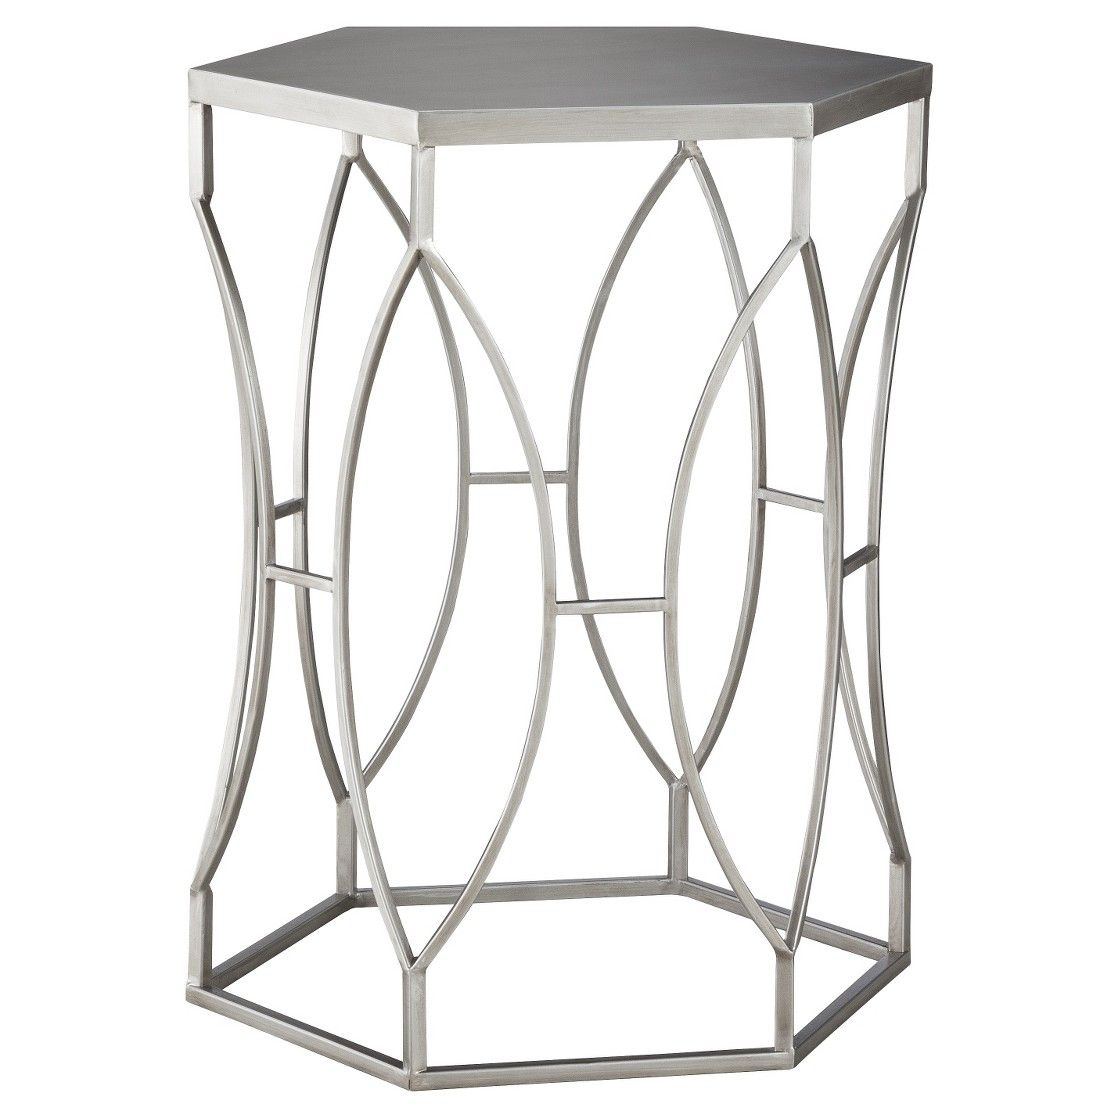 family room threshold metal accent table silver living espresso drum dining console floor transition reducer small porch chairs with shelves and drawers gold marble wall mounted